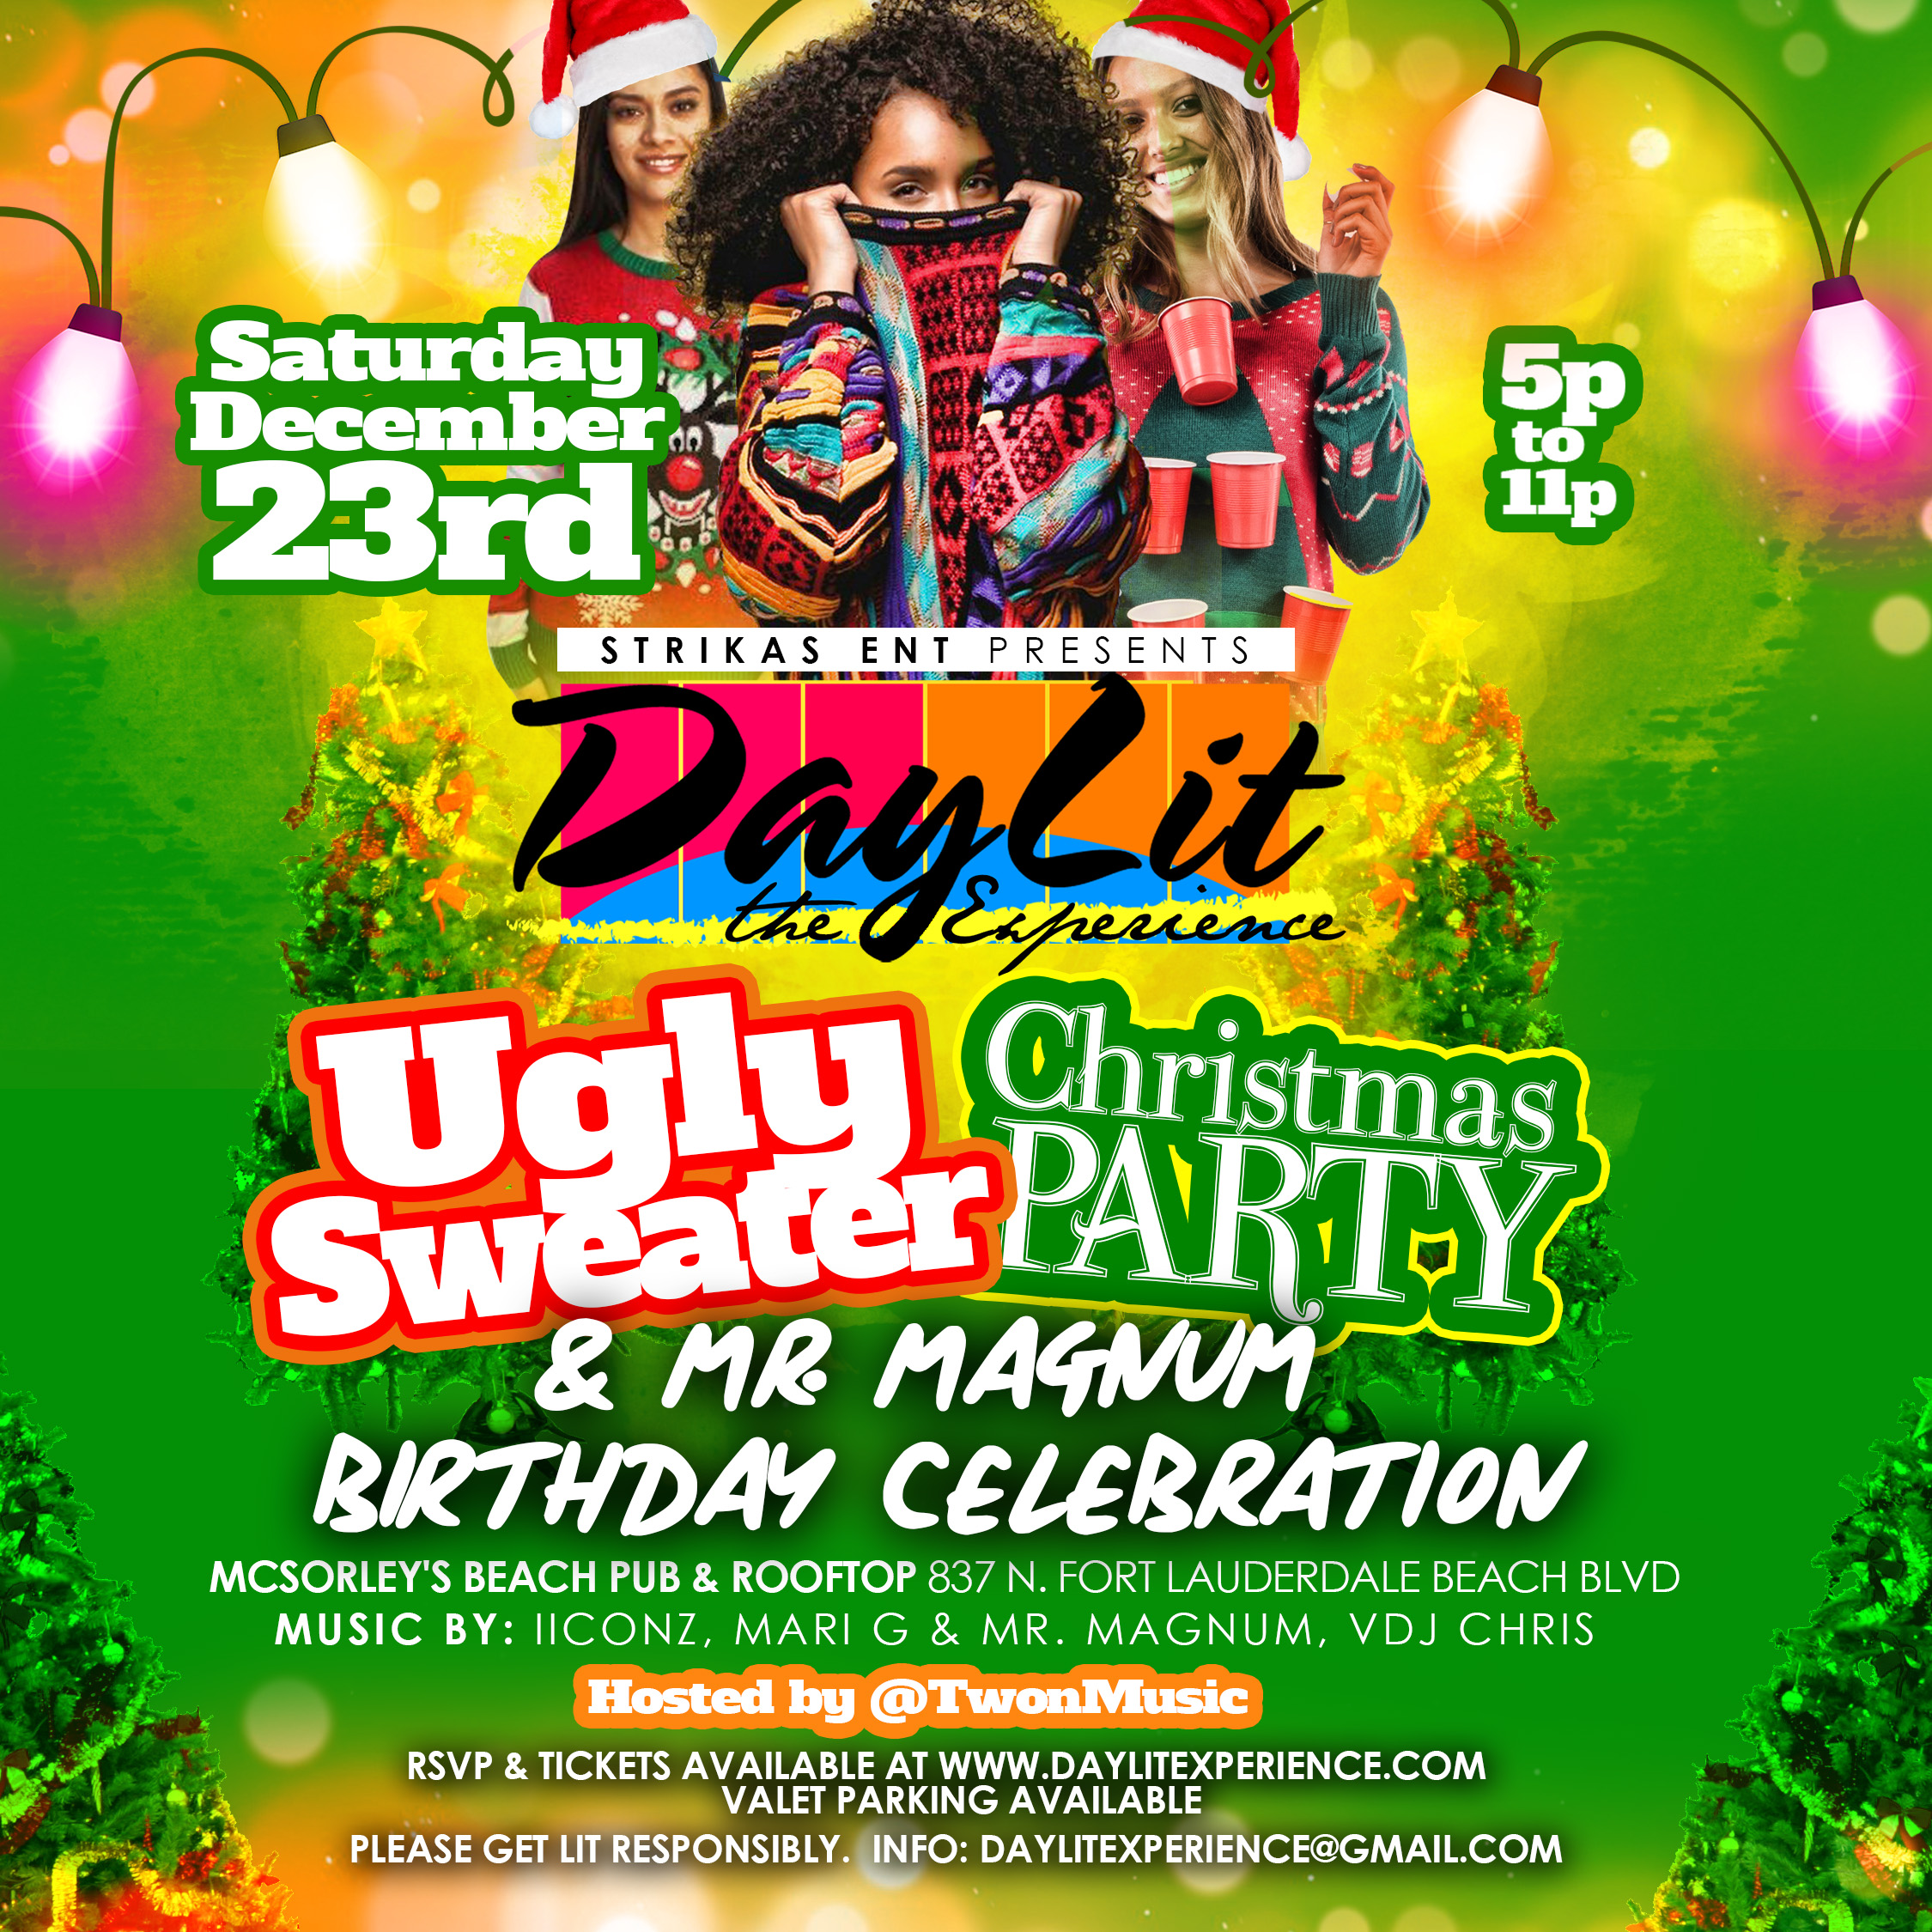 DayLit - A Lit-Mas Experience: Ugly Sweater Party and Birthday Celebration for Mr. Magnum